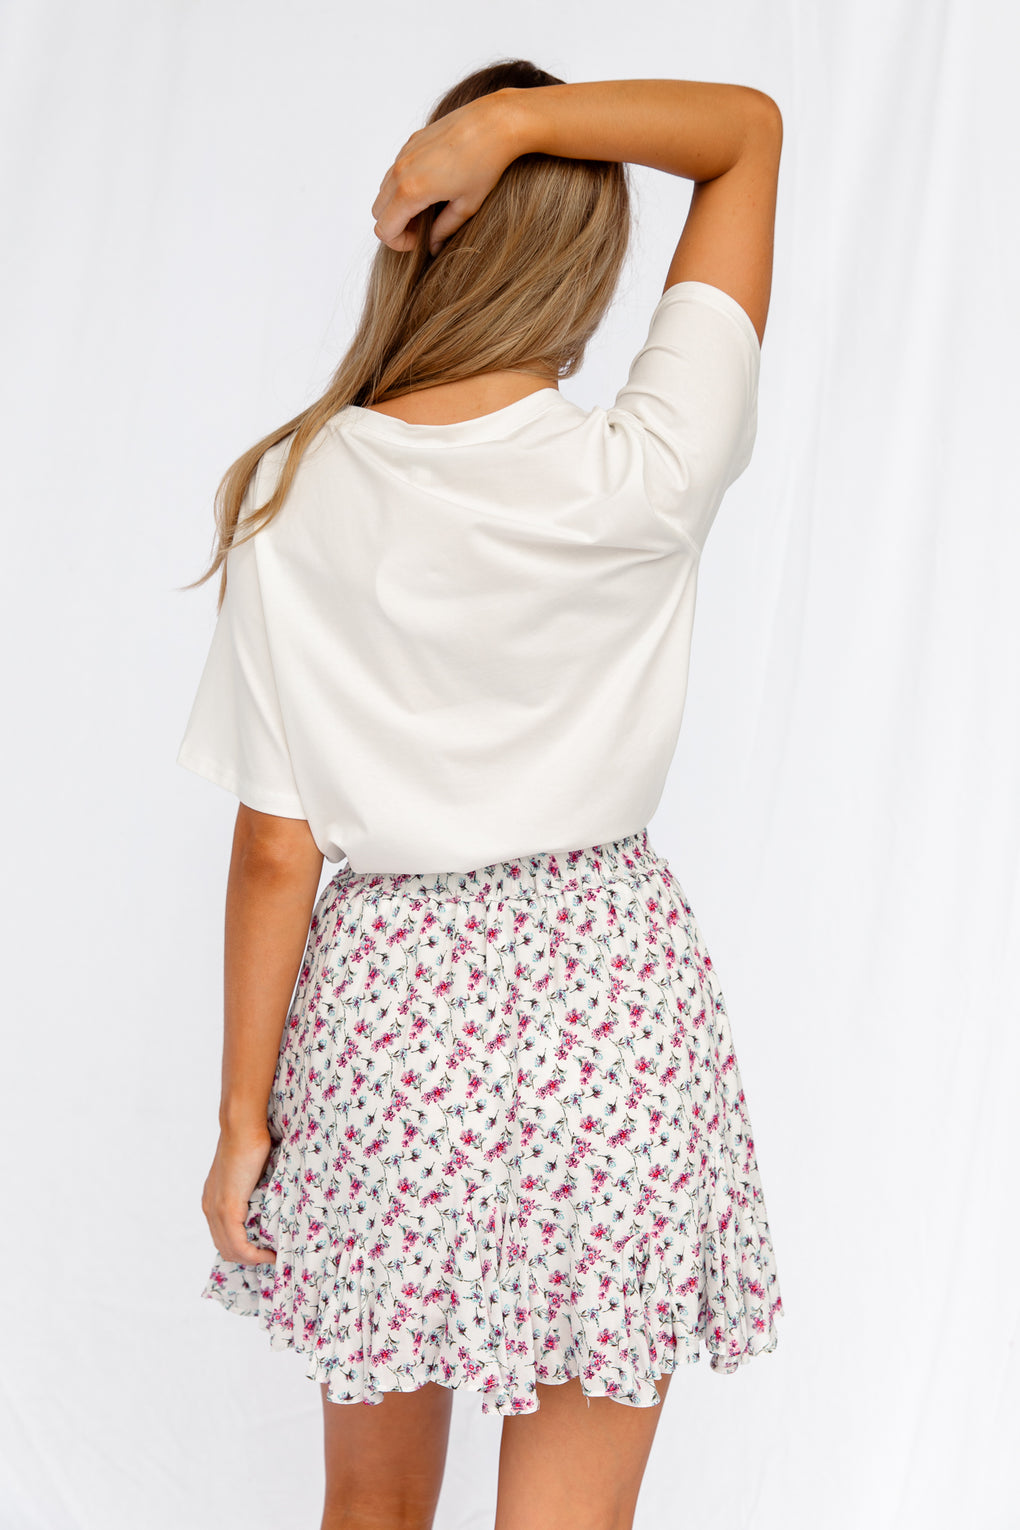 SUNSHINE & DAISIES TOP WHITE